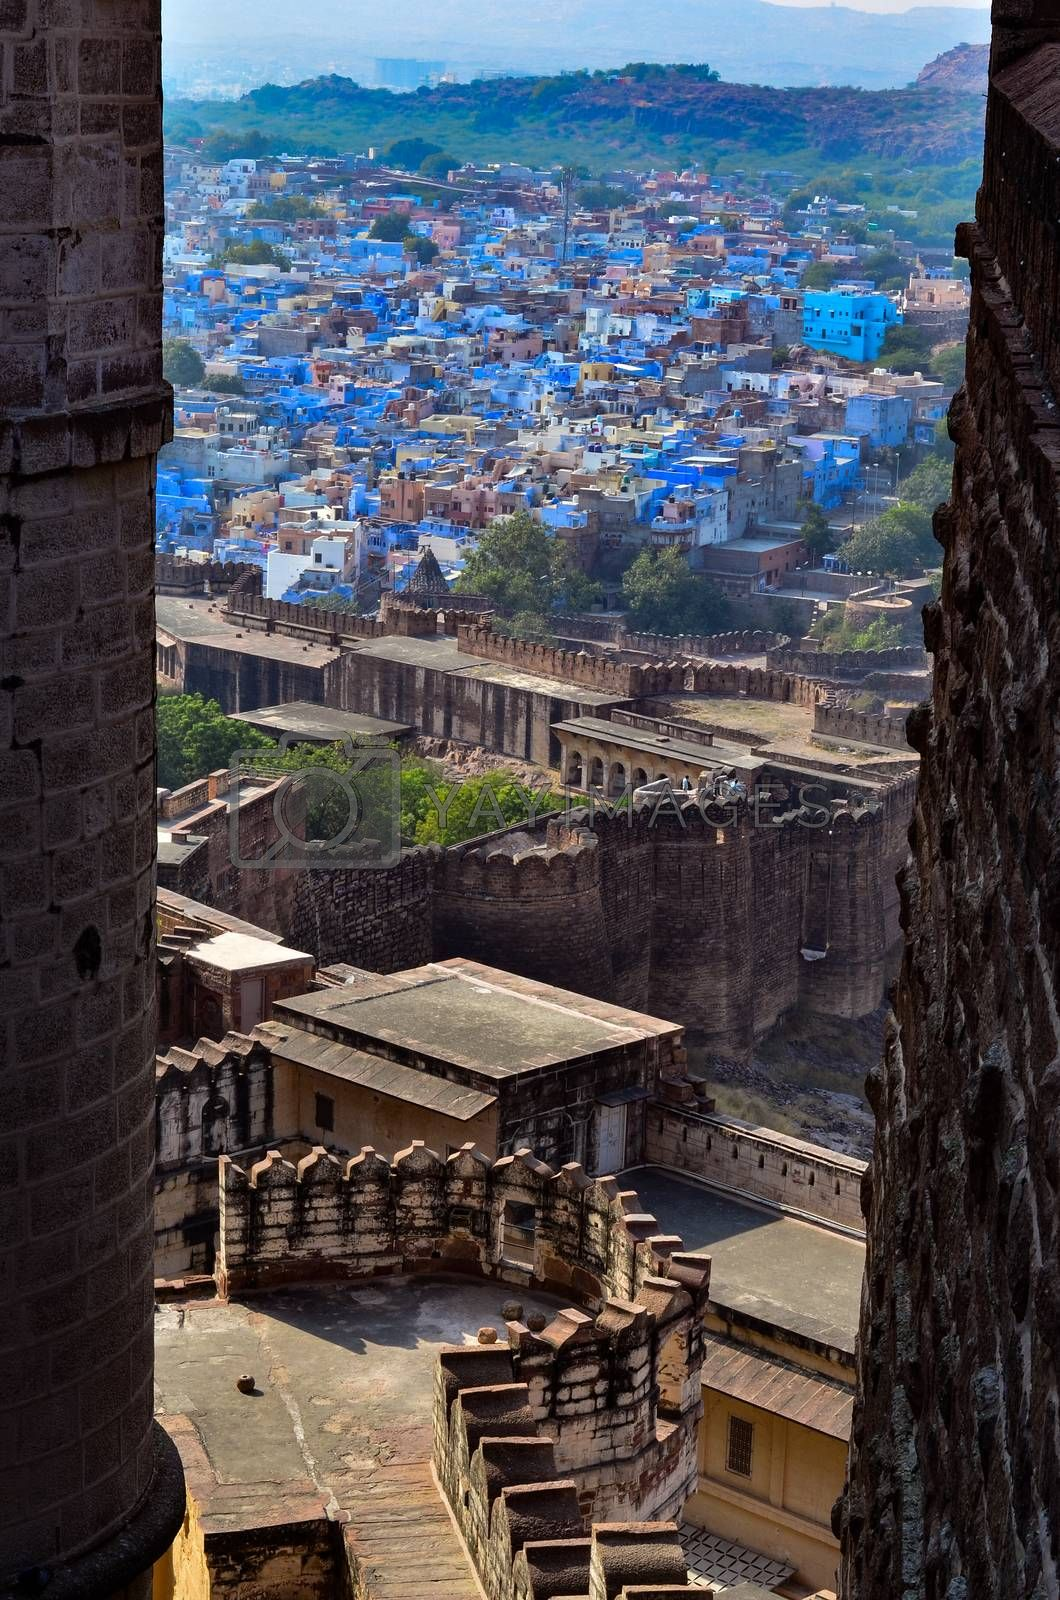 Aerial view of Jodhpur, the blue city showing the blue colored houses from Mehrangarh Fort, Jodhpur, Rajasthan, India